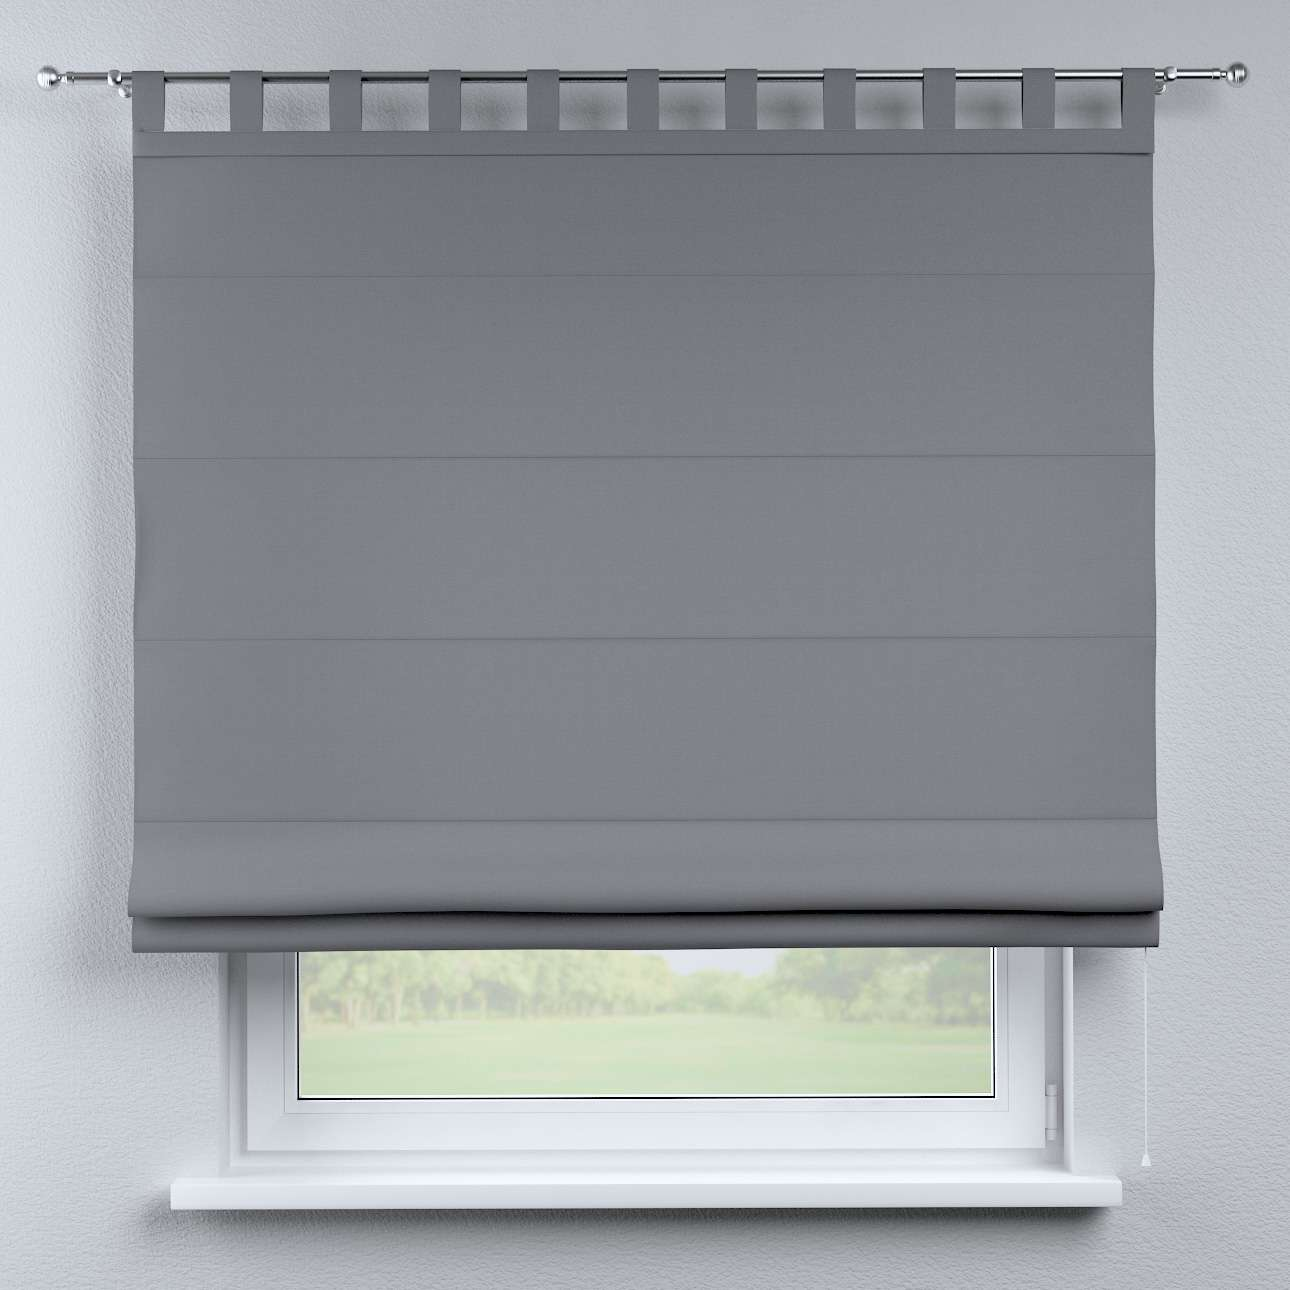 Verona tab top roman blind 80 x 170 cm (31.5 x 67 inch) in collection Cotton Panama, fabric: 702-07